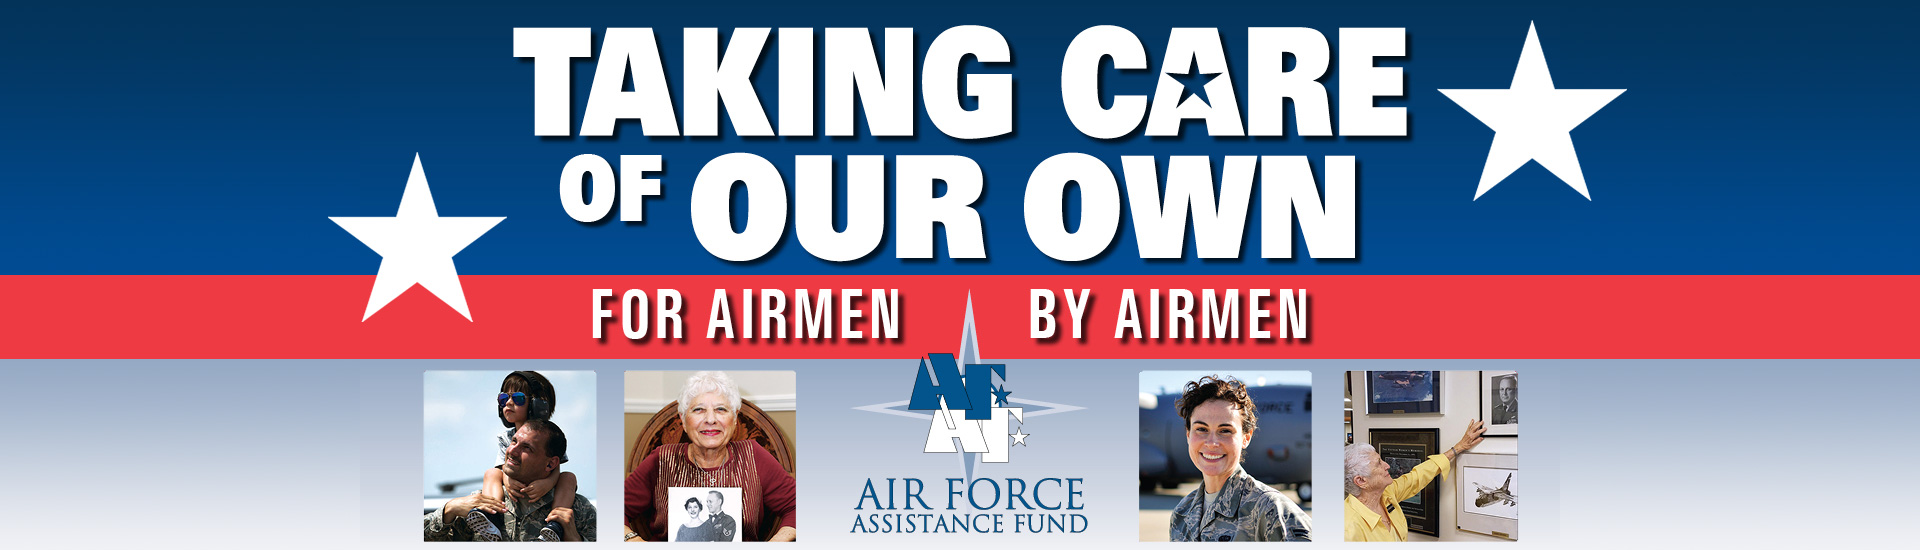 Taking Care of Our Own - For Airmen. By Airmen.